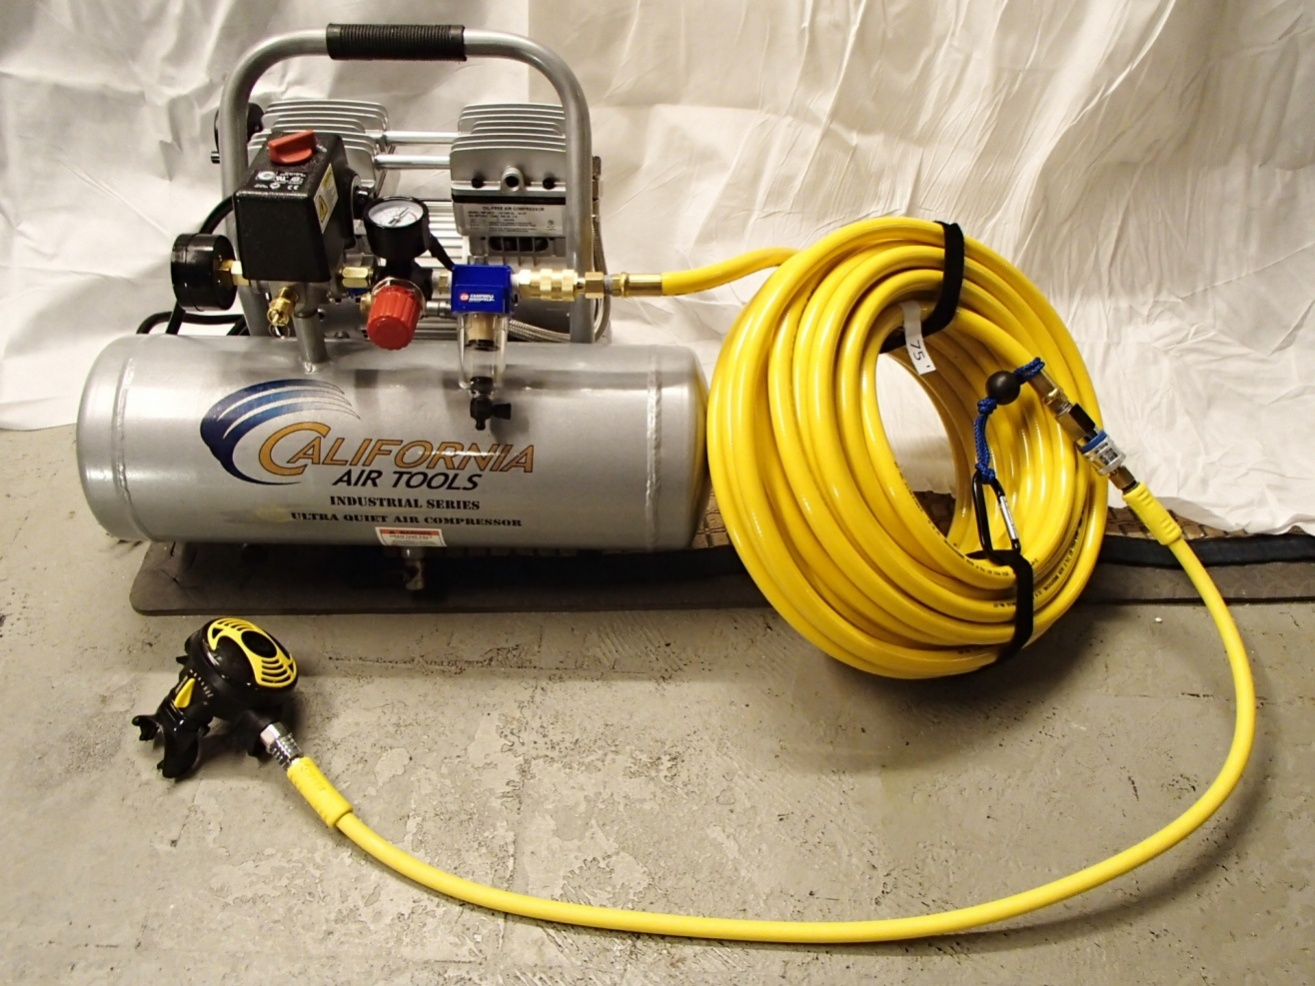 Portable dive tank compressor - which one? - Cruisers